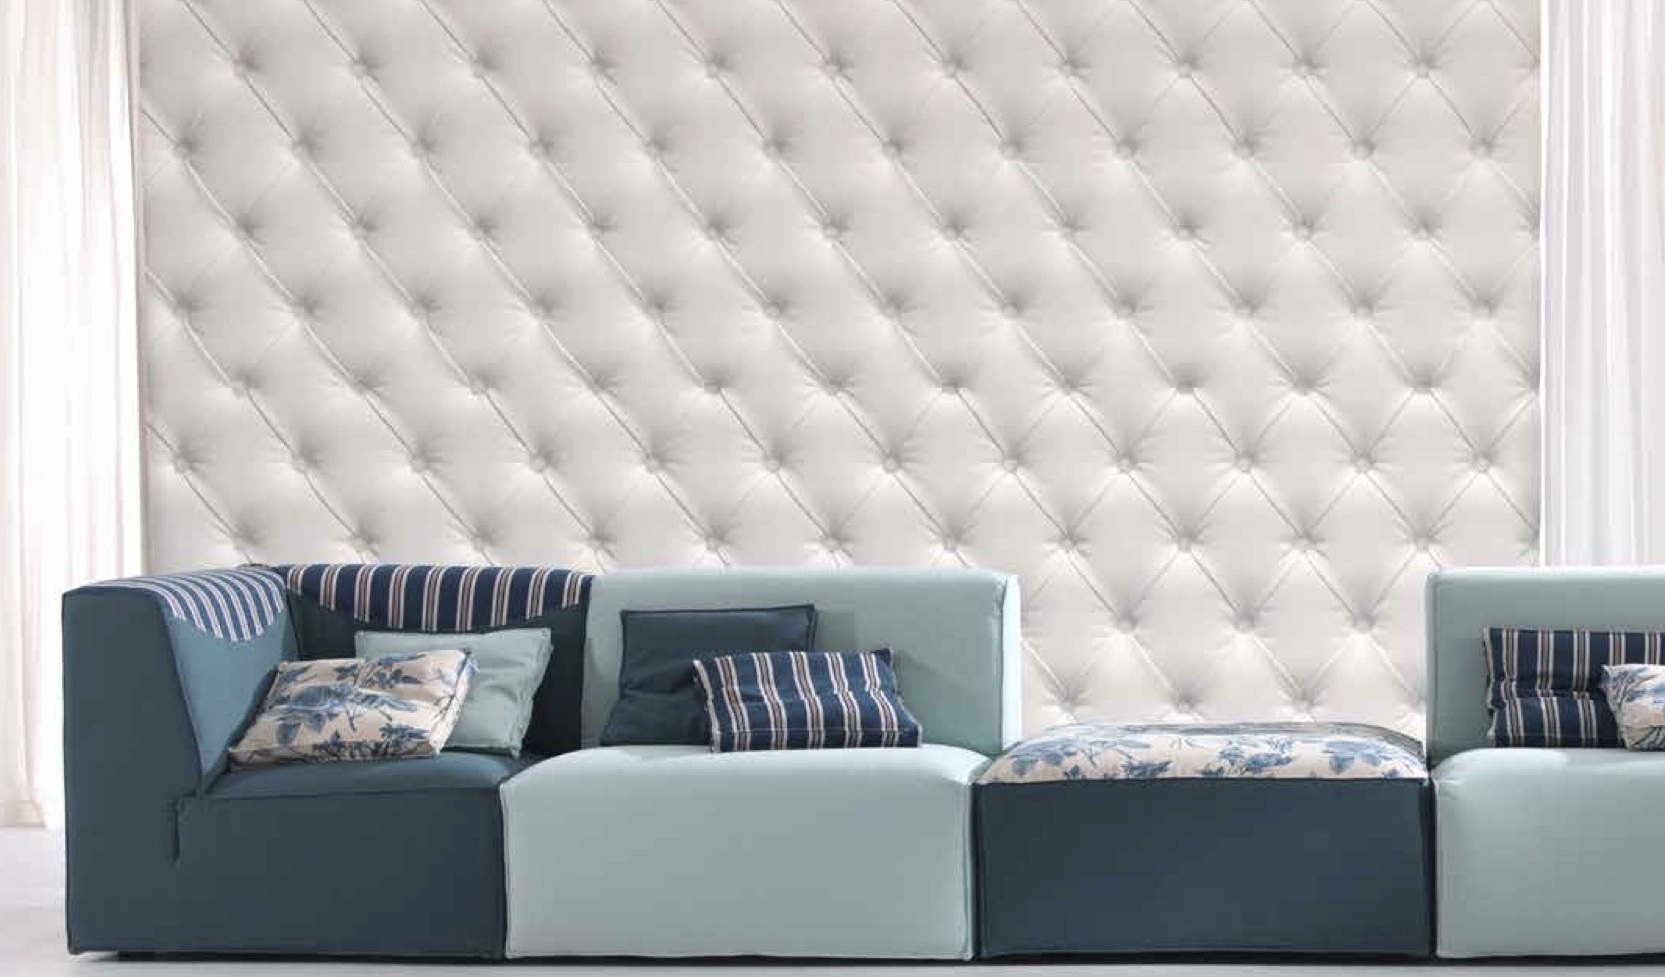 padded walls texture viewing gallery